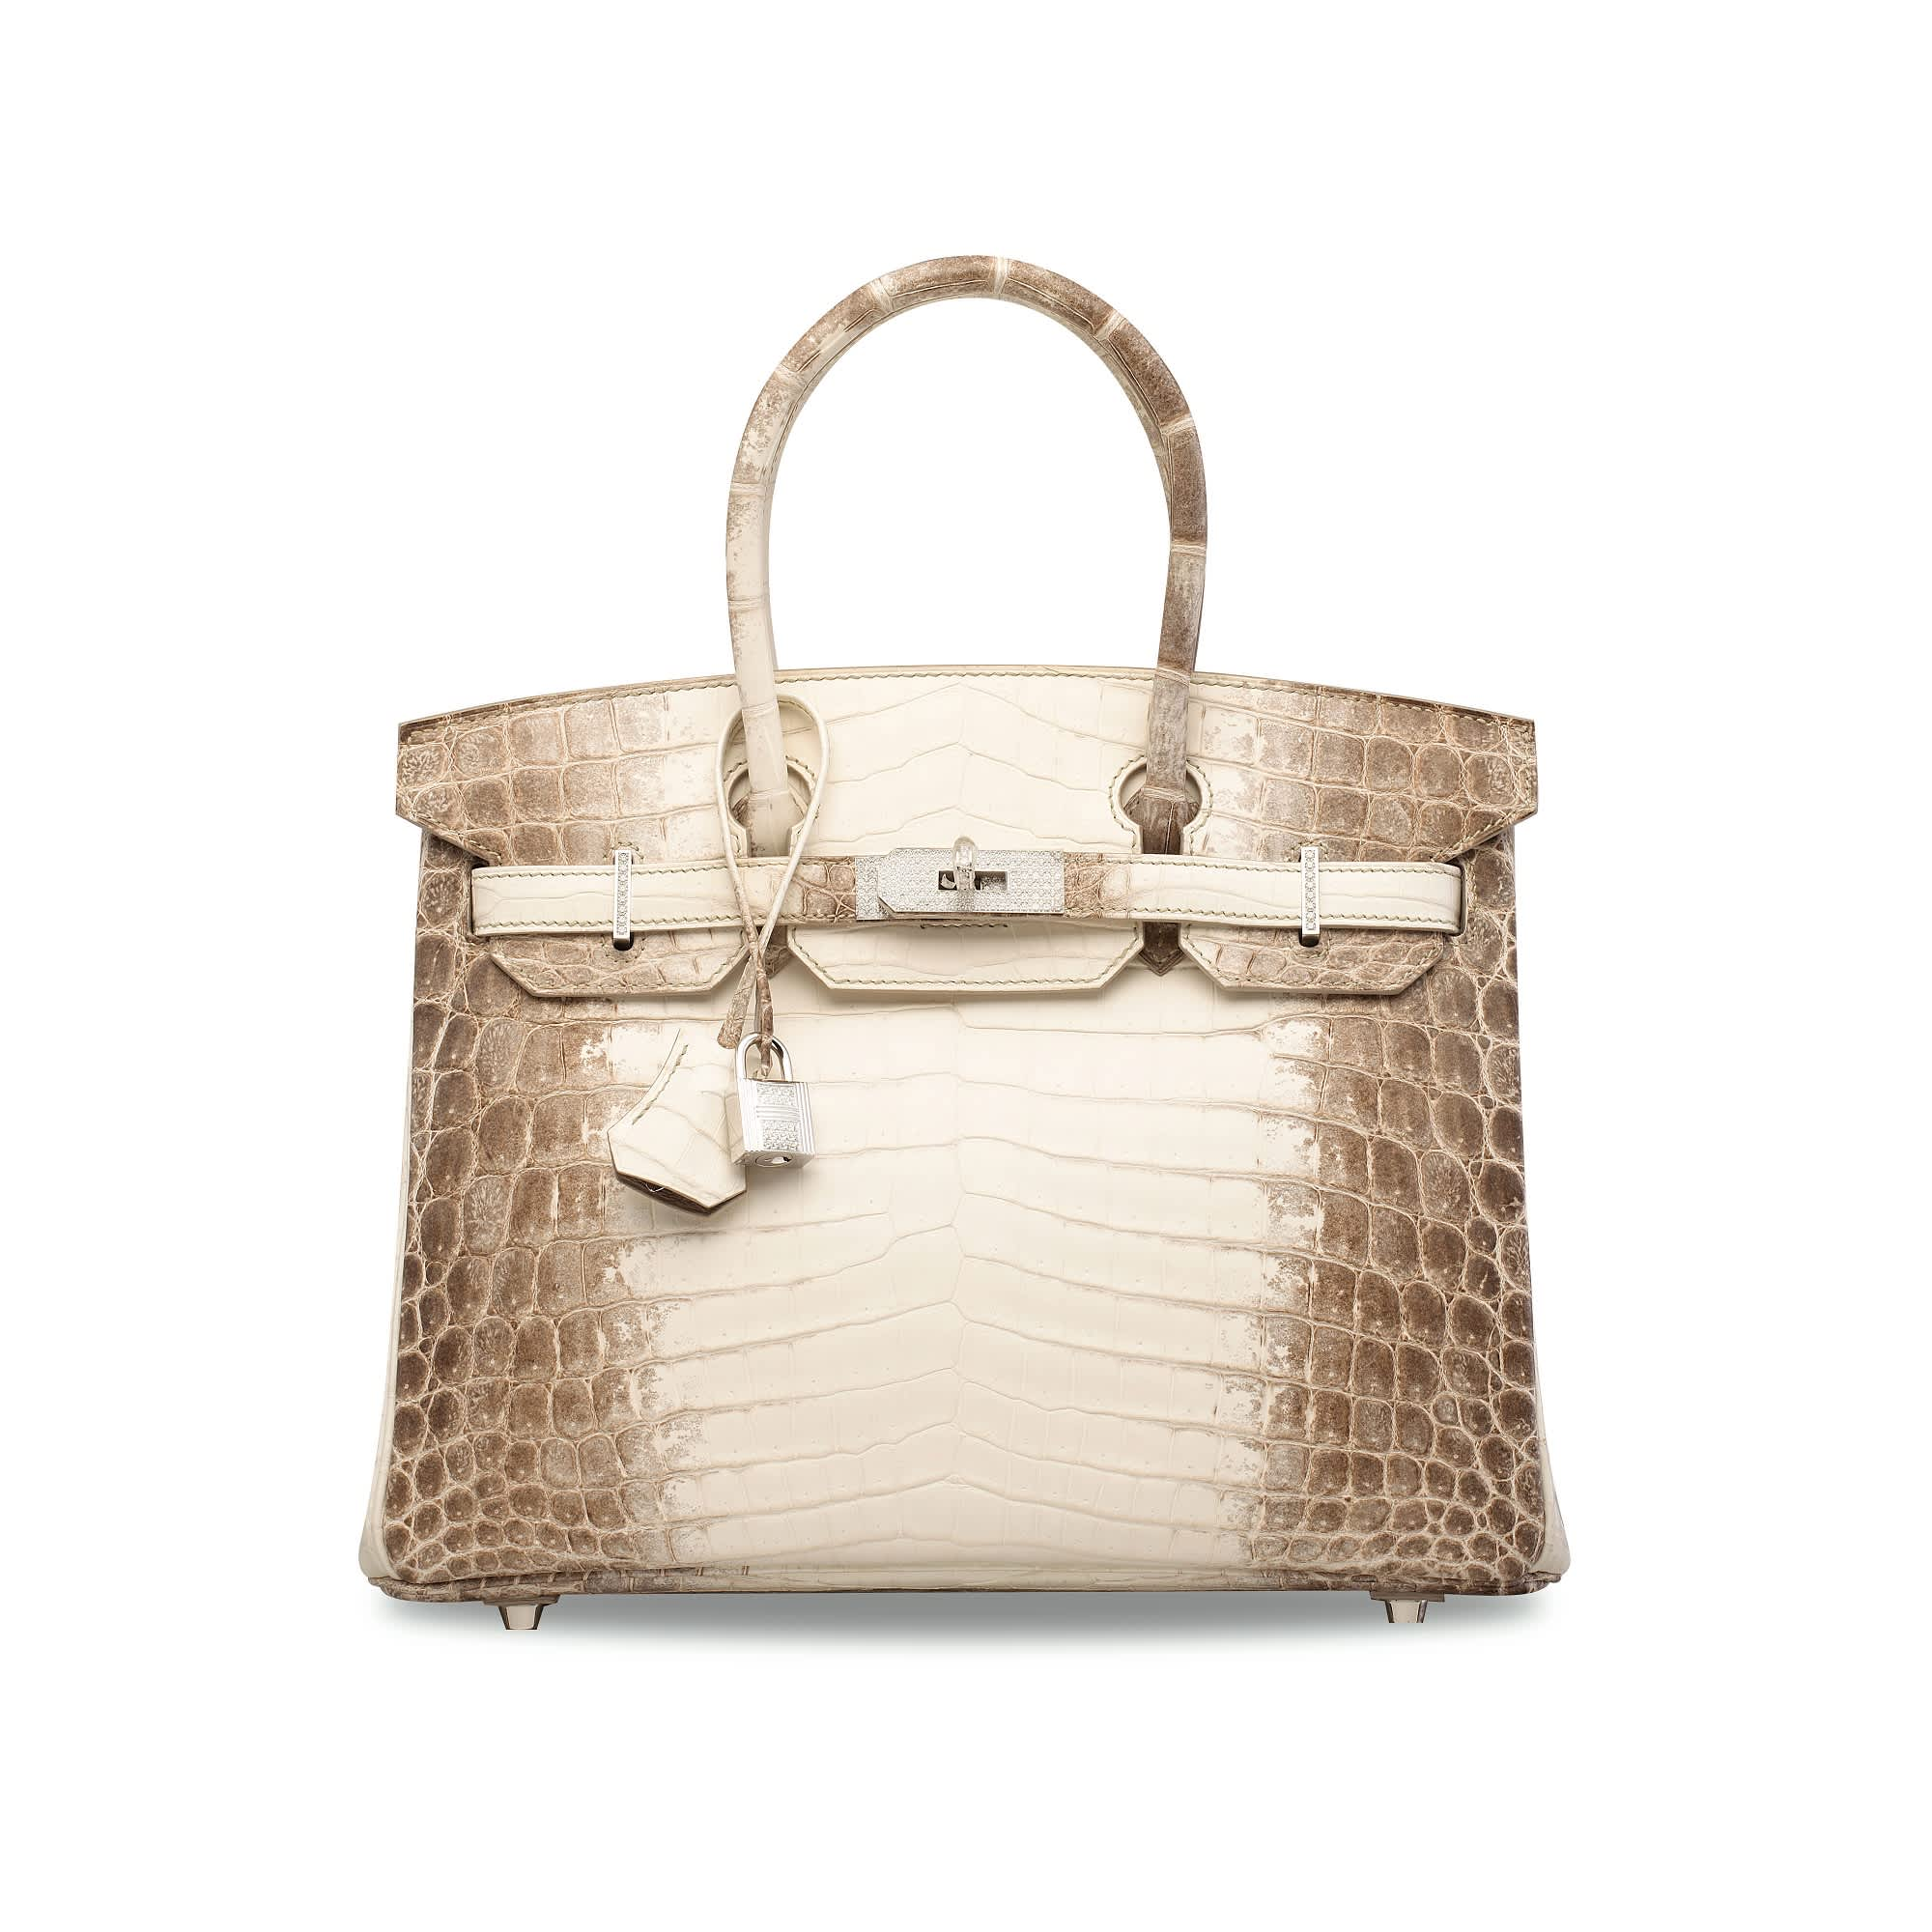 This $379,261 Hermes Birkin handbag is the most expensive